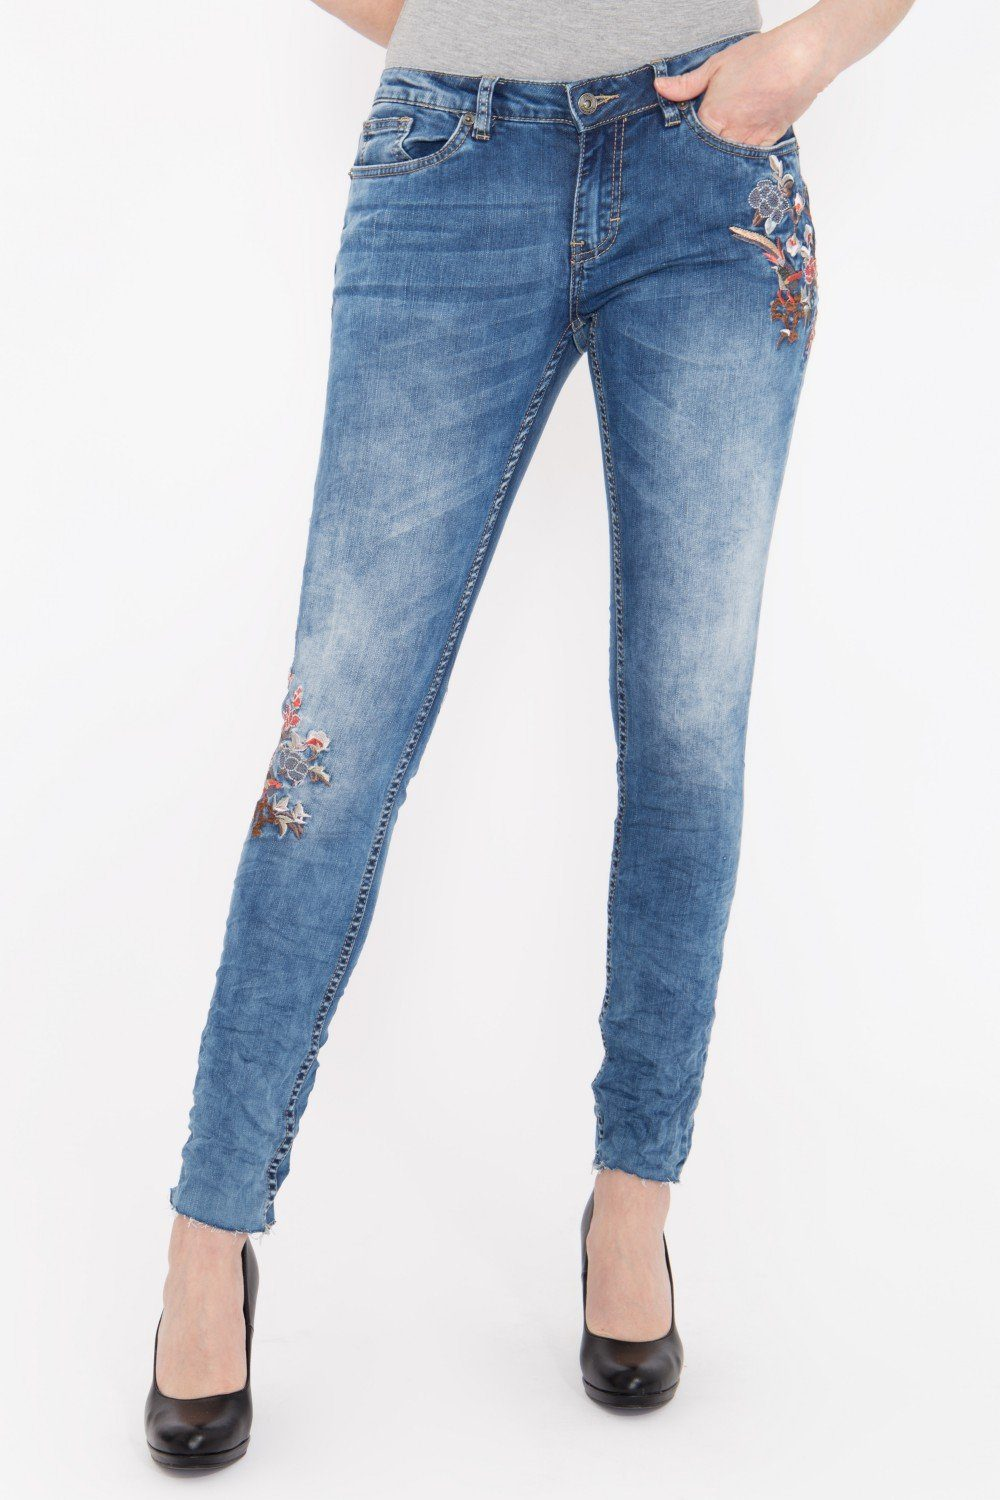 blue monkey -  Skinny-fit-Jeans Piper 9033